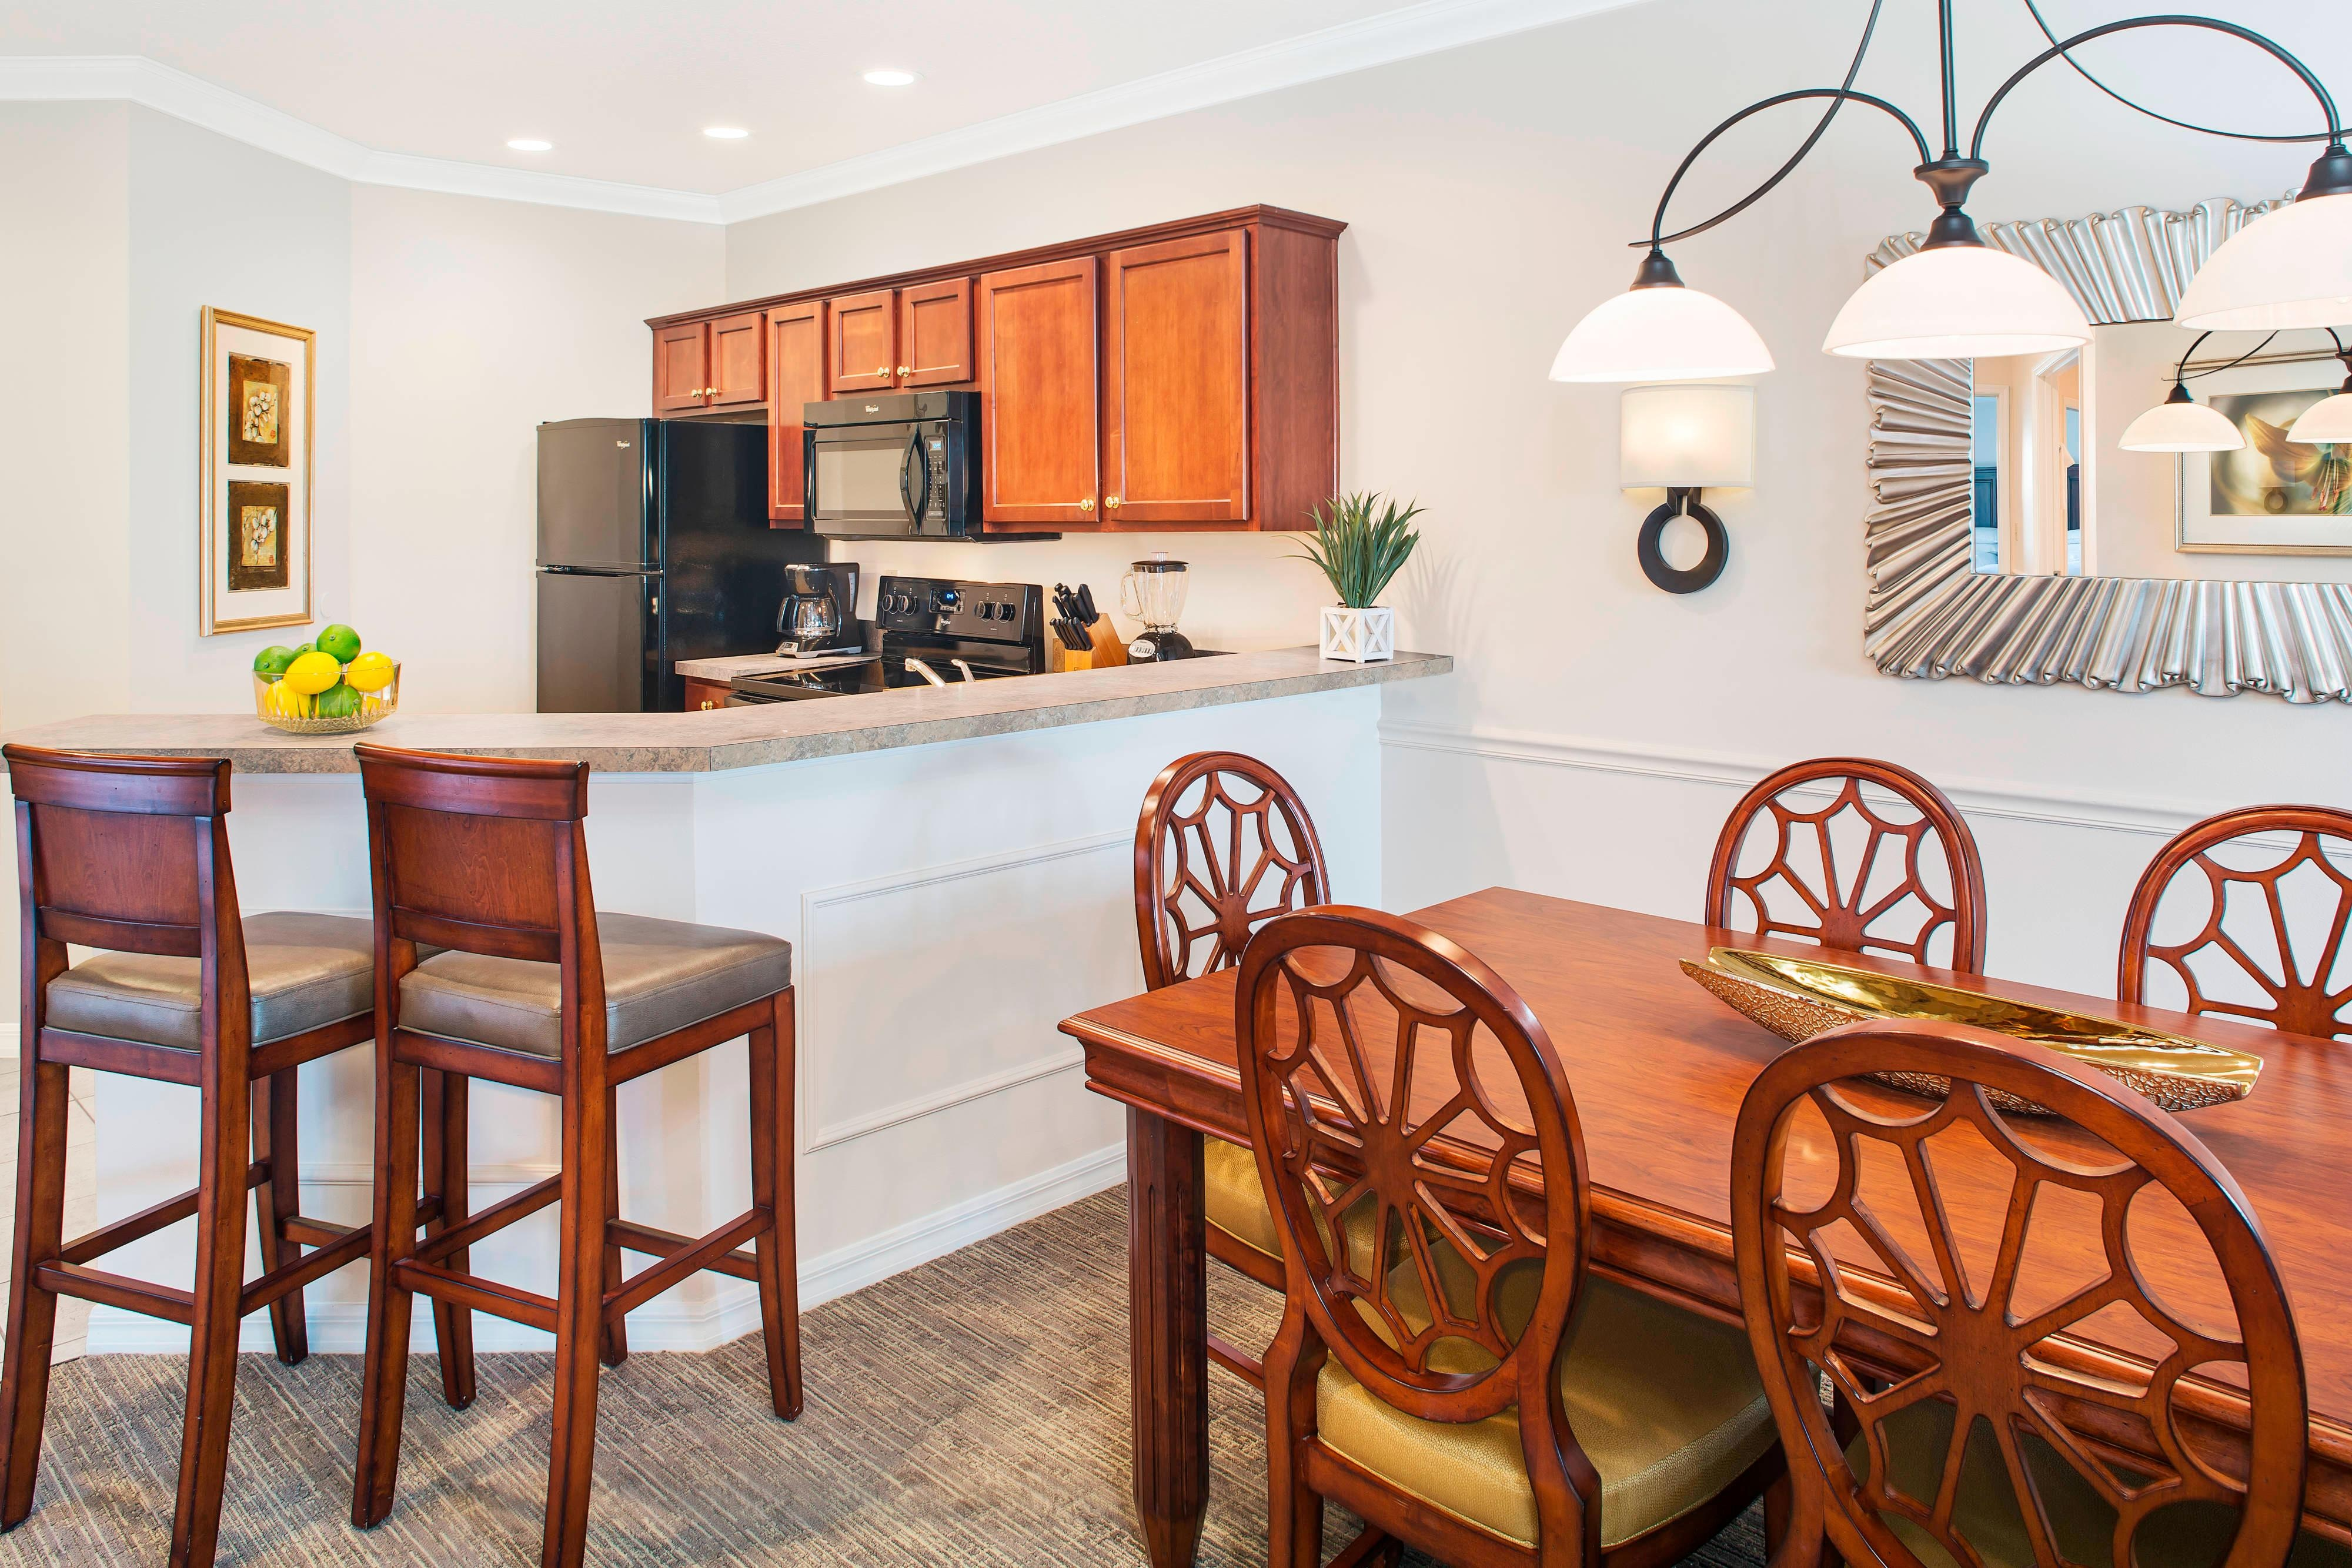 One-Bedroom Premium Villa Dining Kitchen Furnishings May Vary